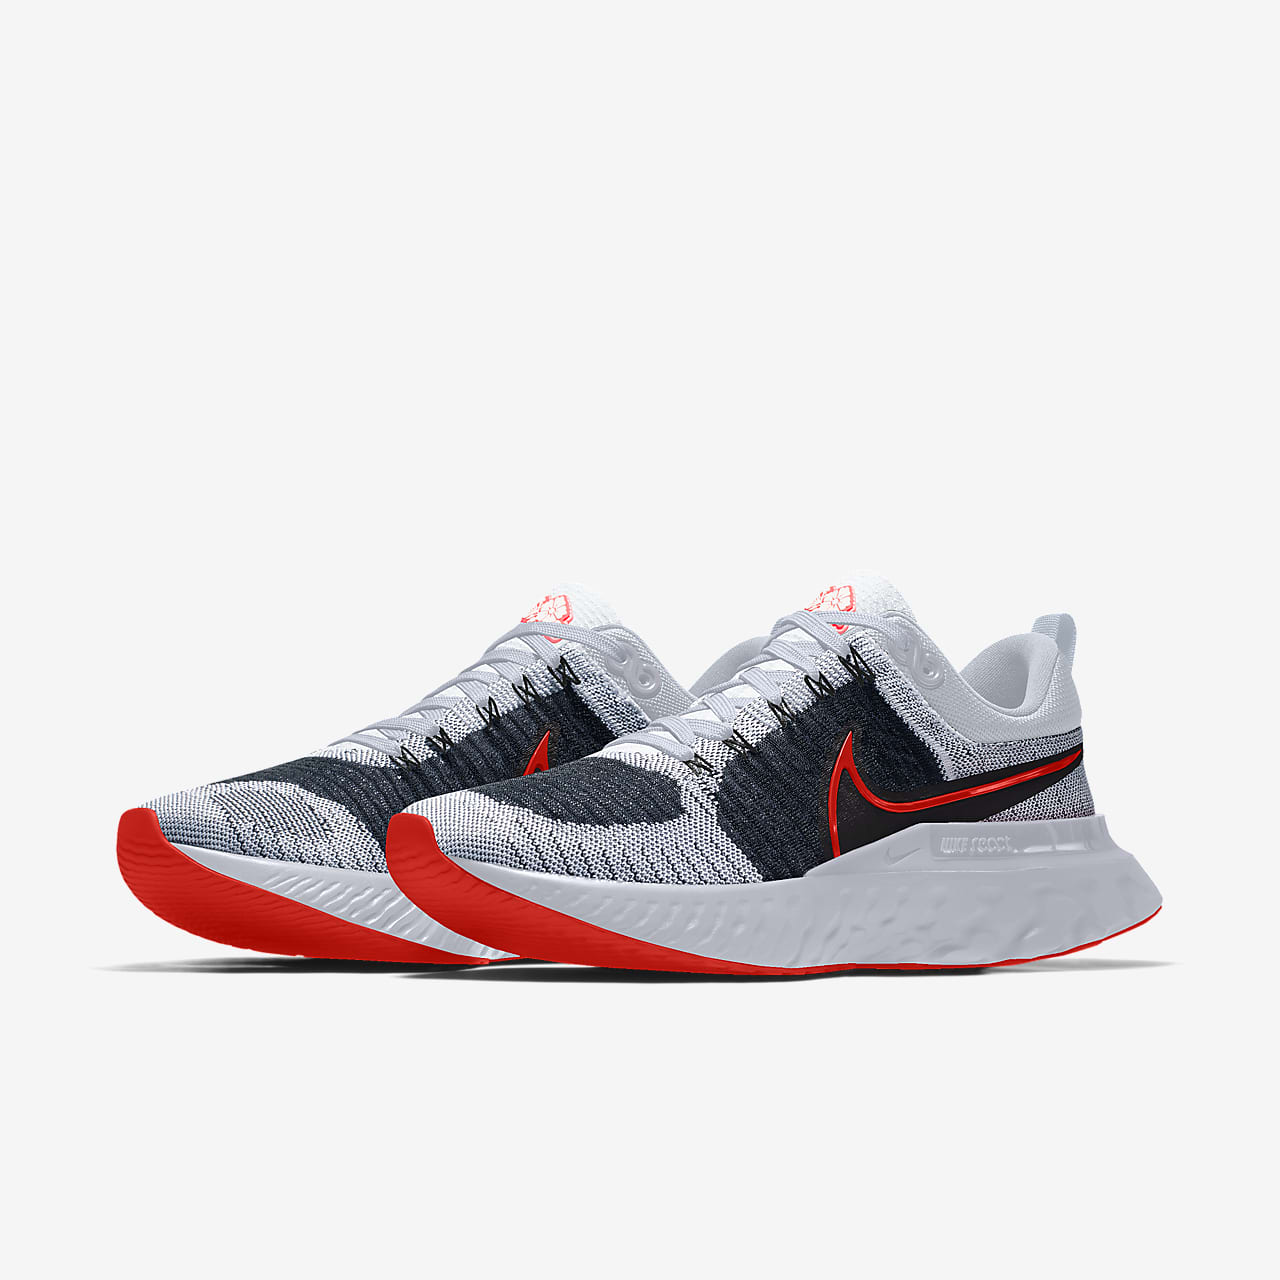 Chaussure de running personnalisable Nike React Infinity Run Flyknit 2 By You pour Homme